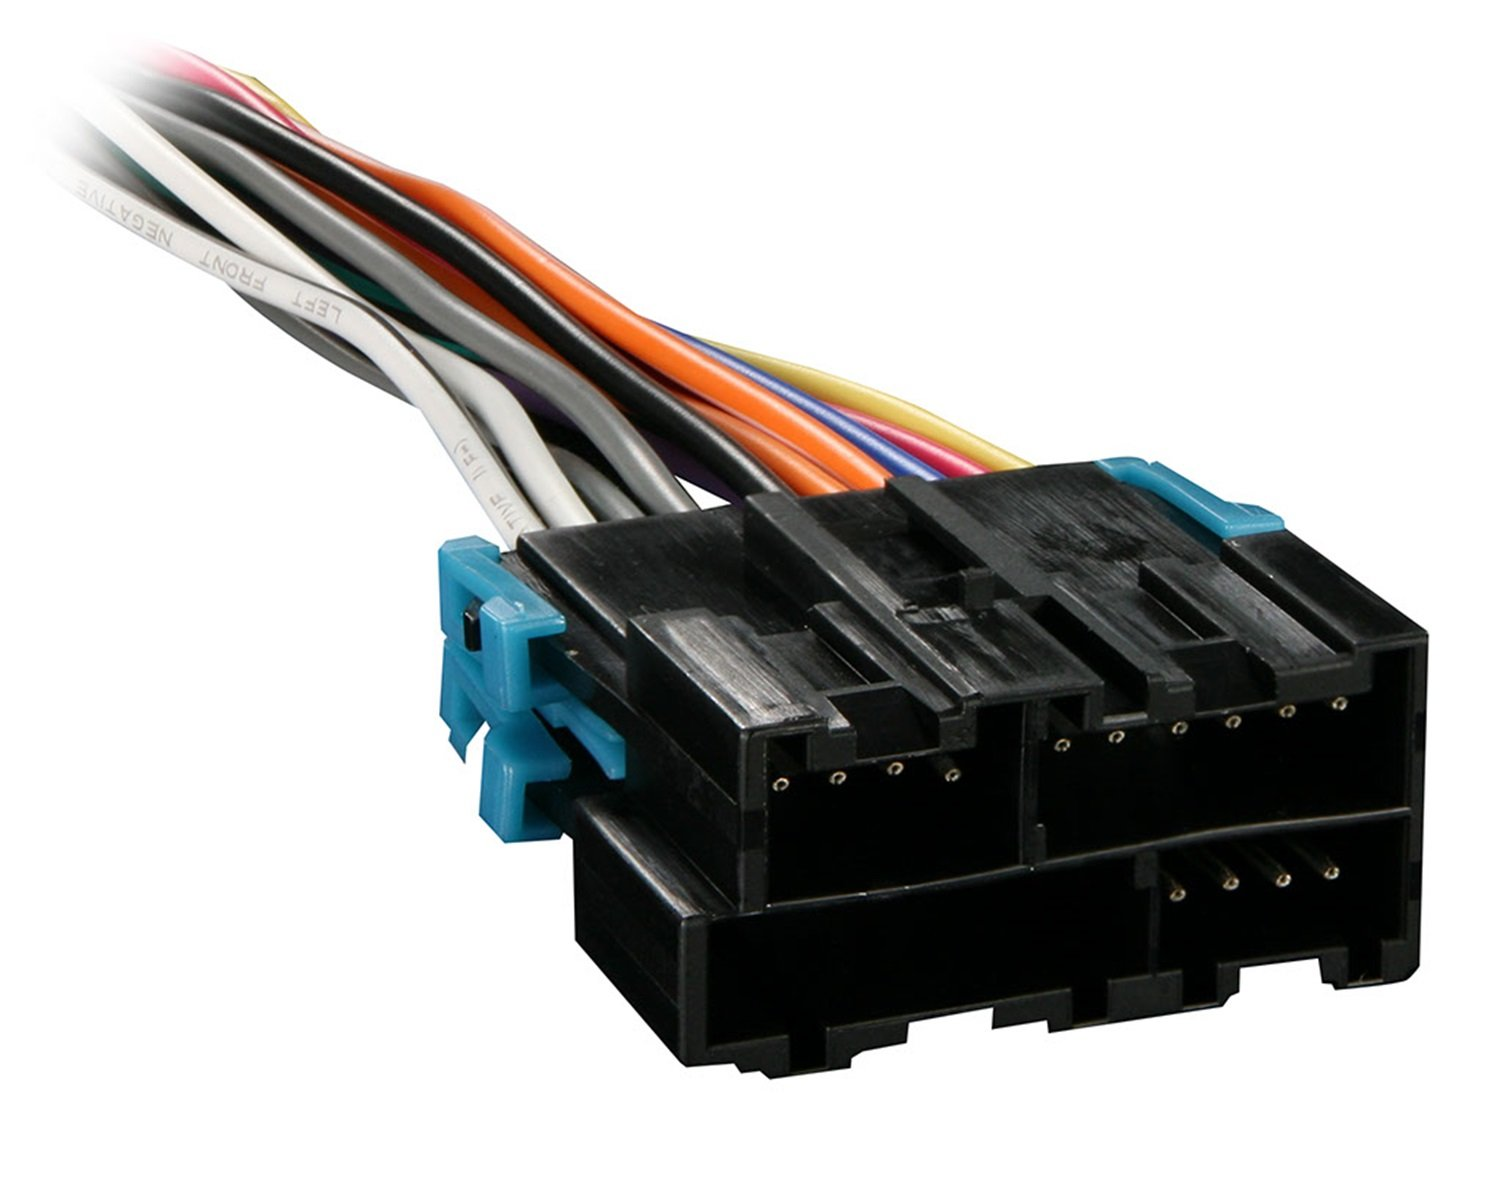 61 CwjZt1hL._SL1500_ radio wiring harnesses amazon com Jeep Wiring Harness Diagram at gsmx.co